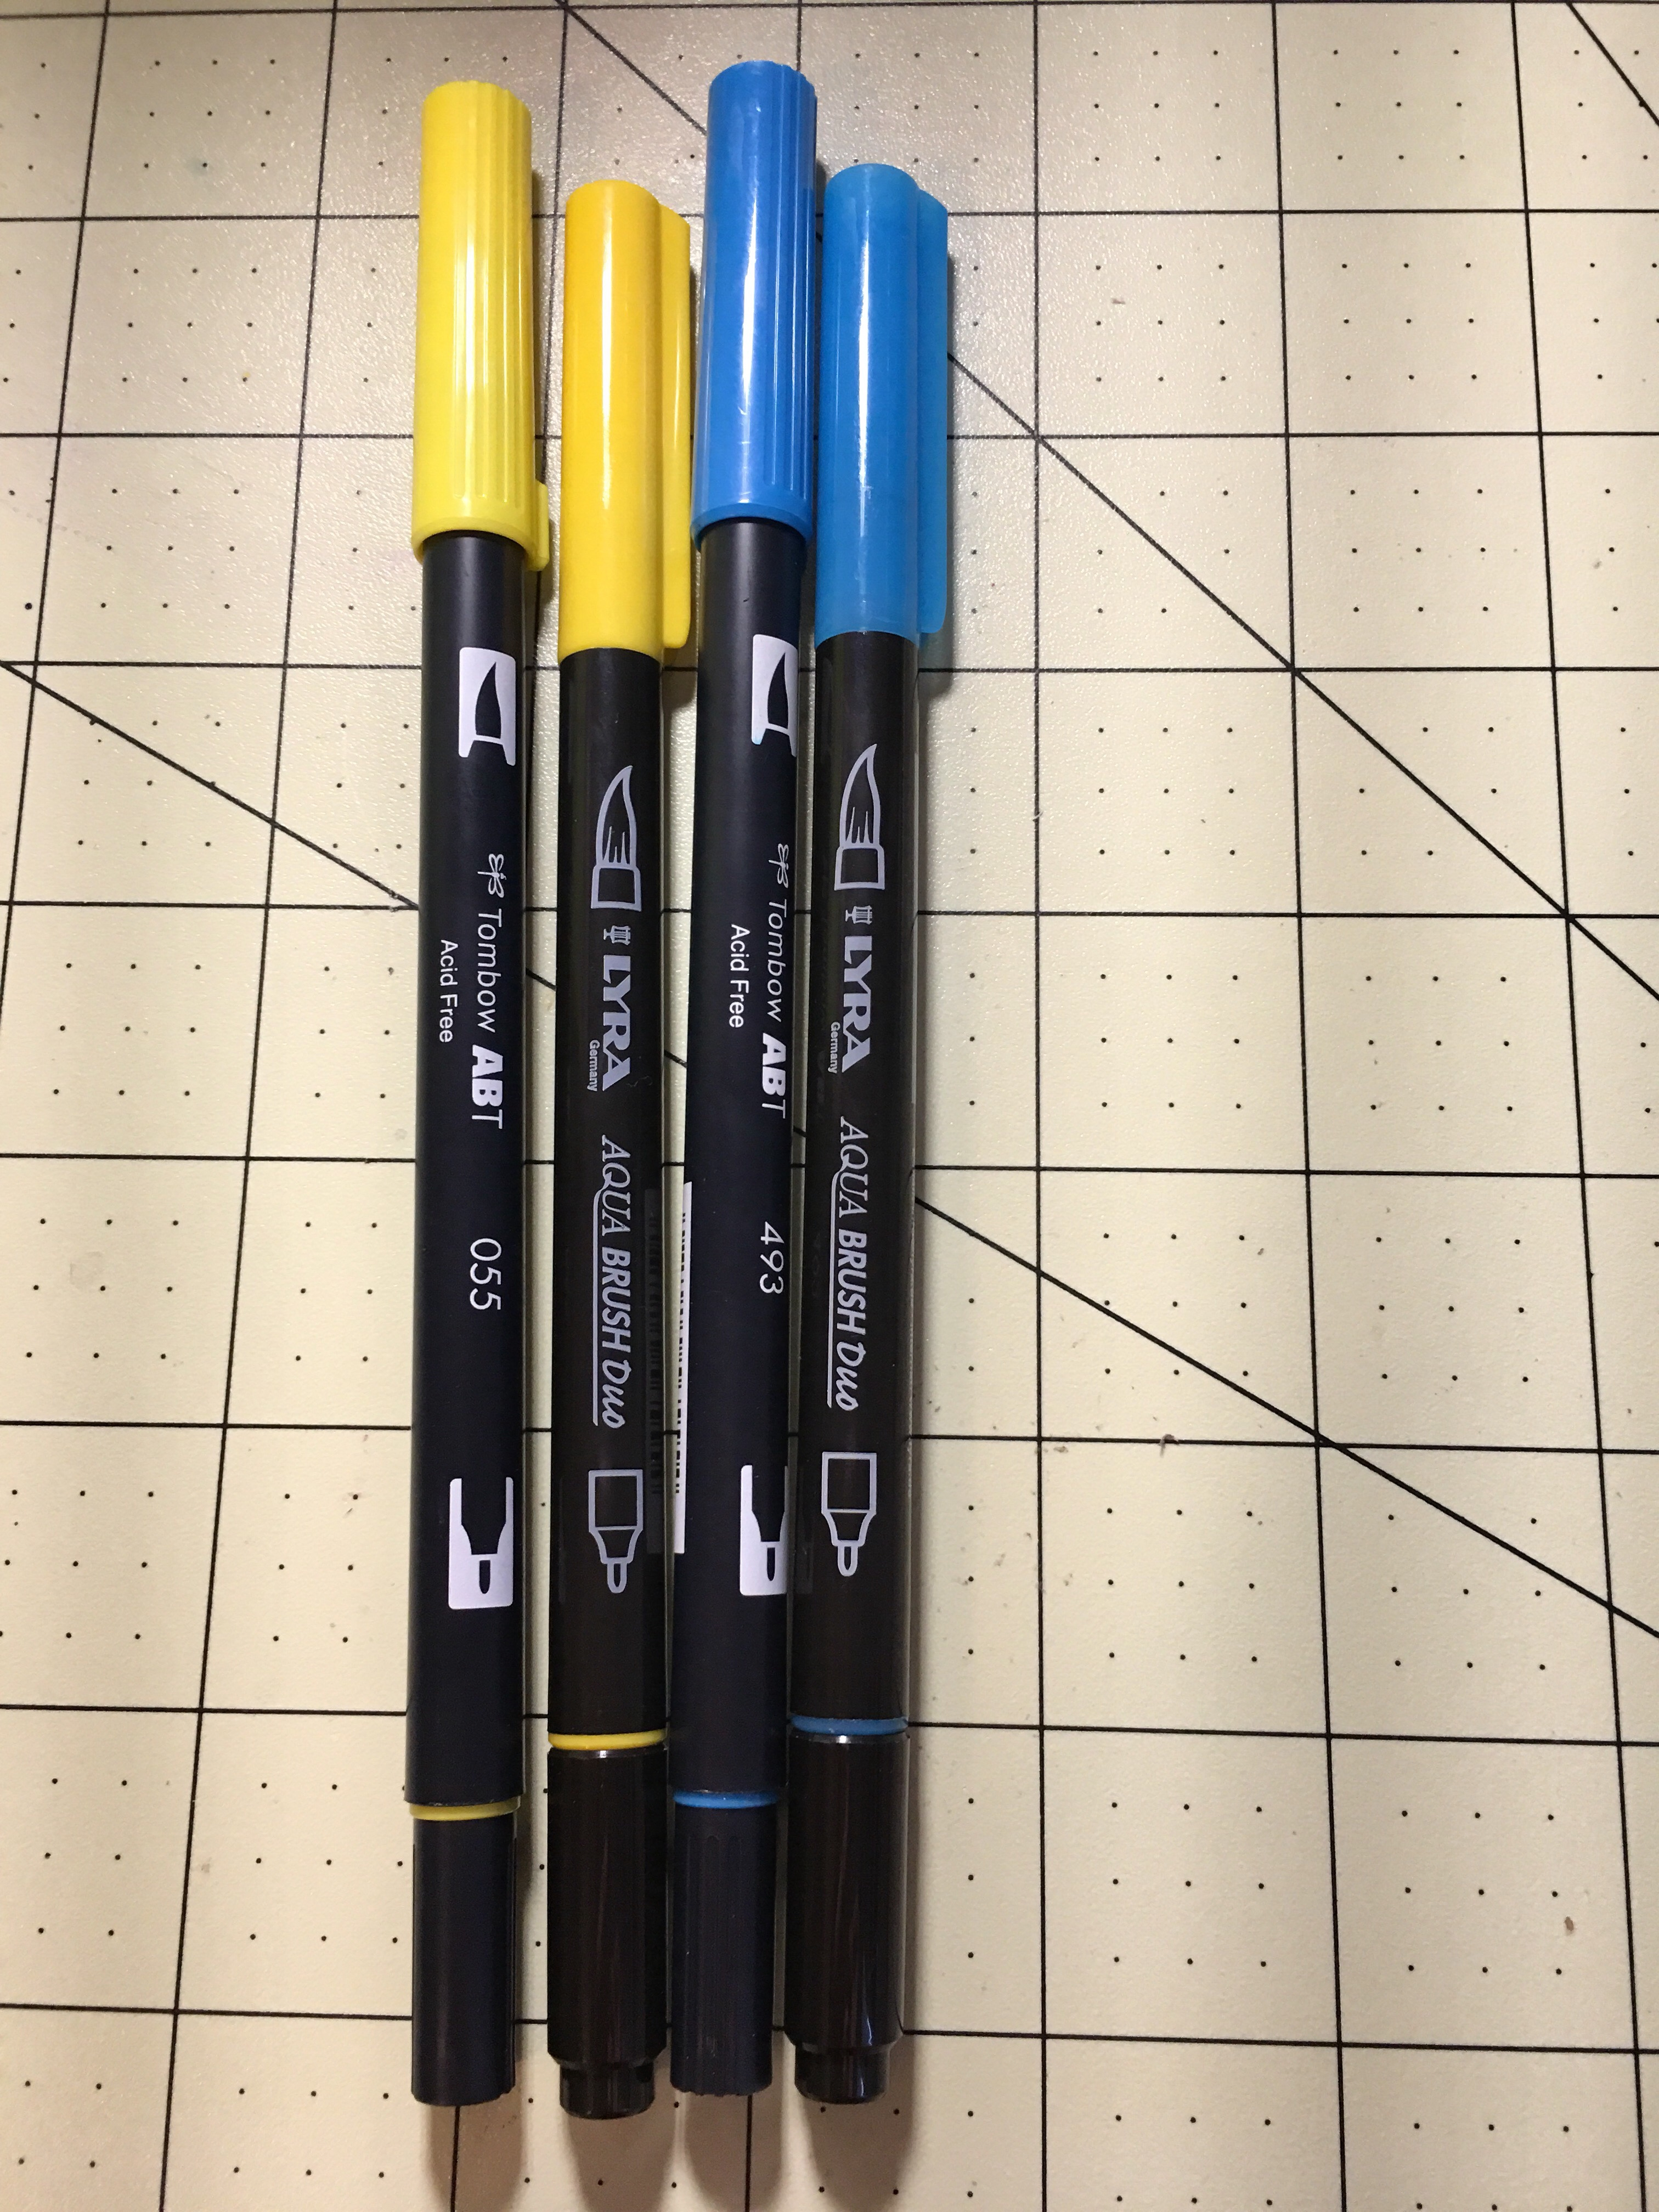 Lyra Aqua Brush Review Rod Squad - Tombow abt markers